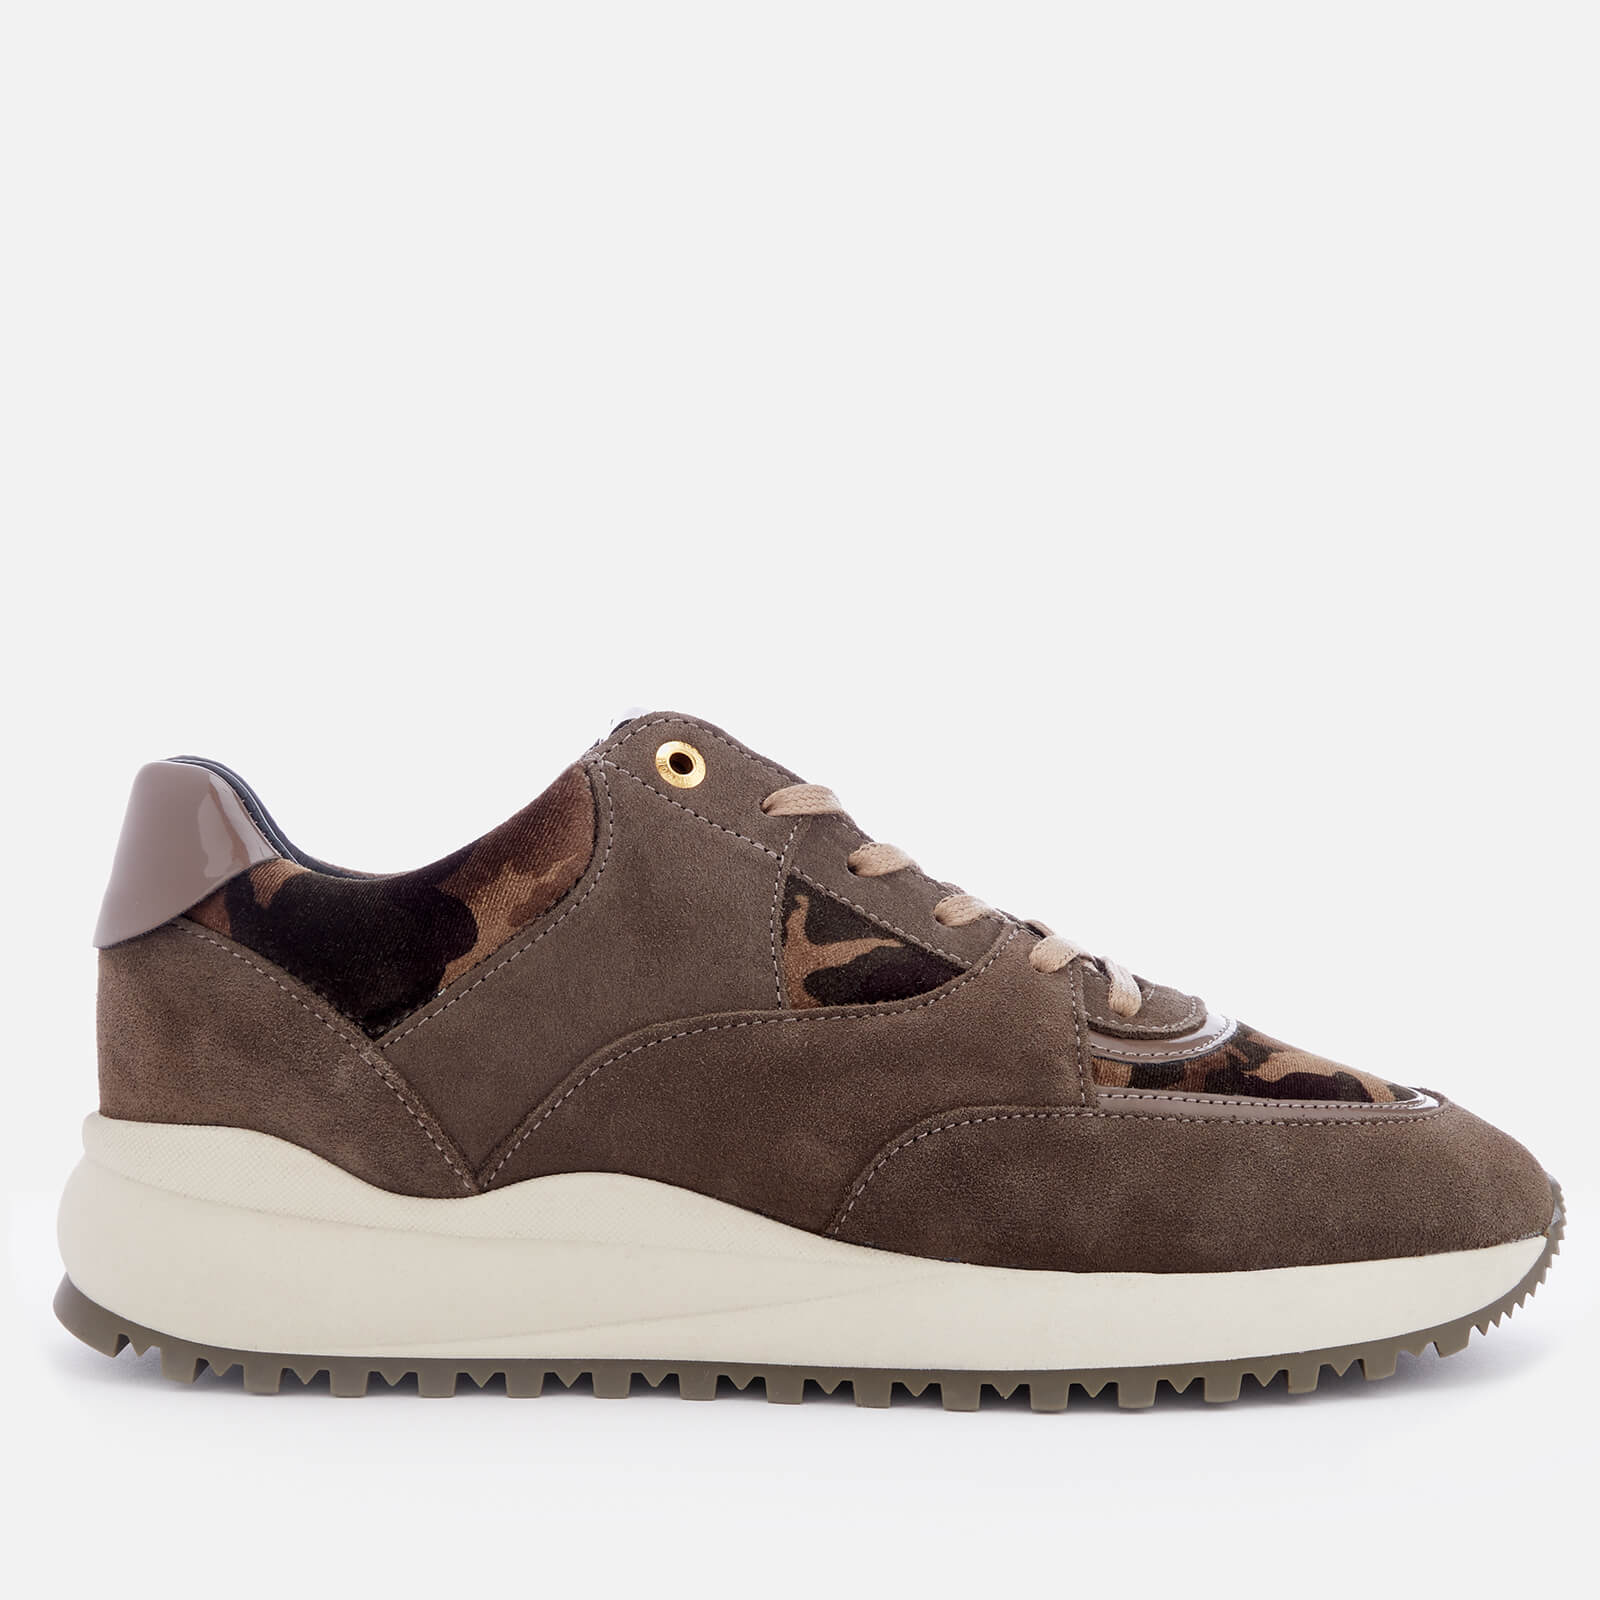 b2d8722a4d07 Android Homme Men s Belter 3.0 Suede Runner Style Trainers - Taupe - Free  UK Delivery over £50